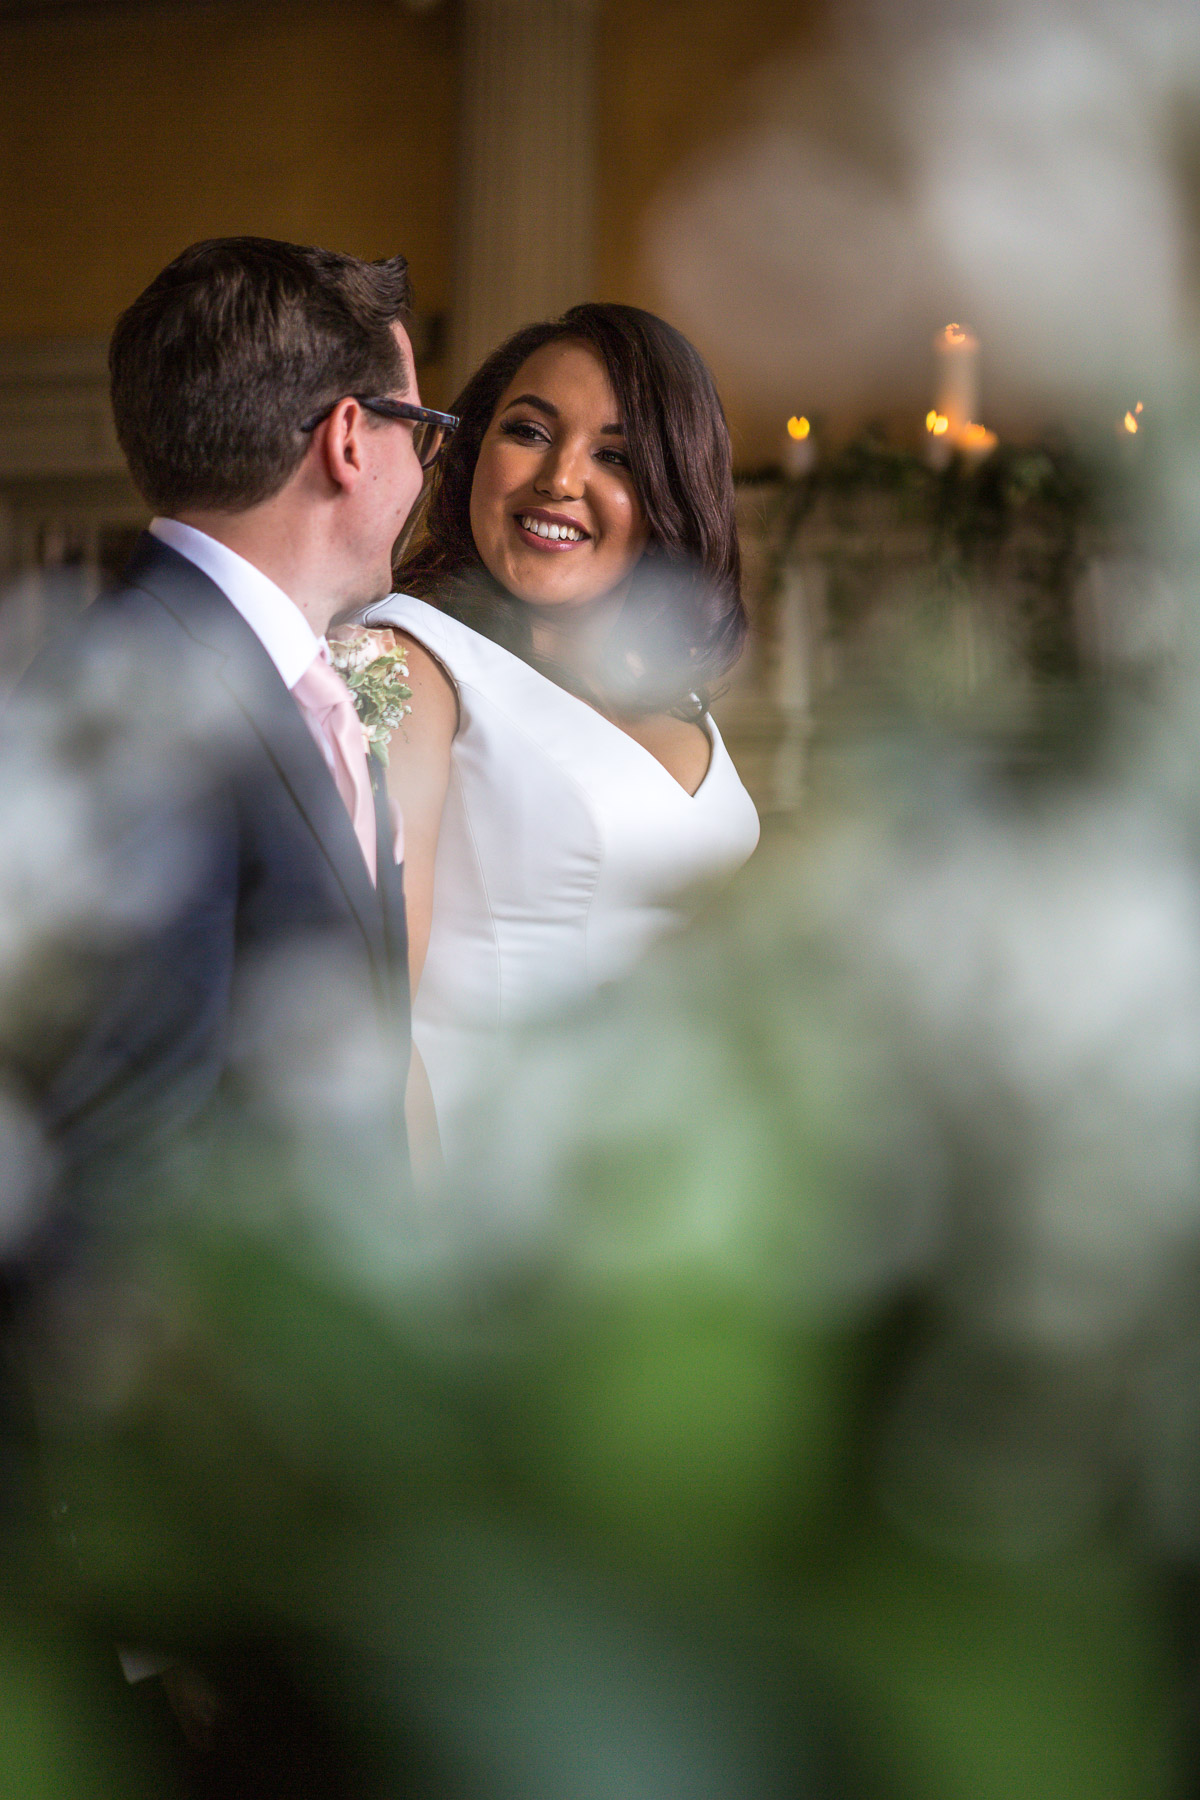 A bride & groom smile at the alter surrounded by blurred flowers